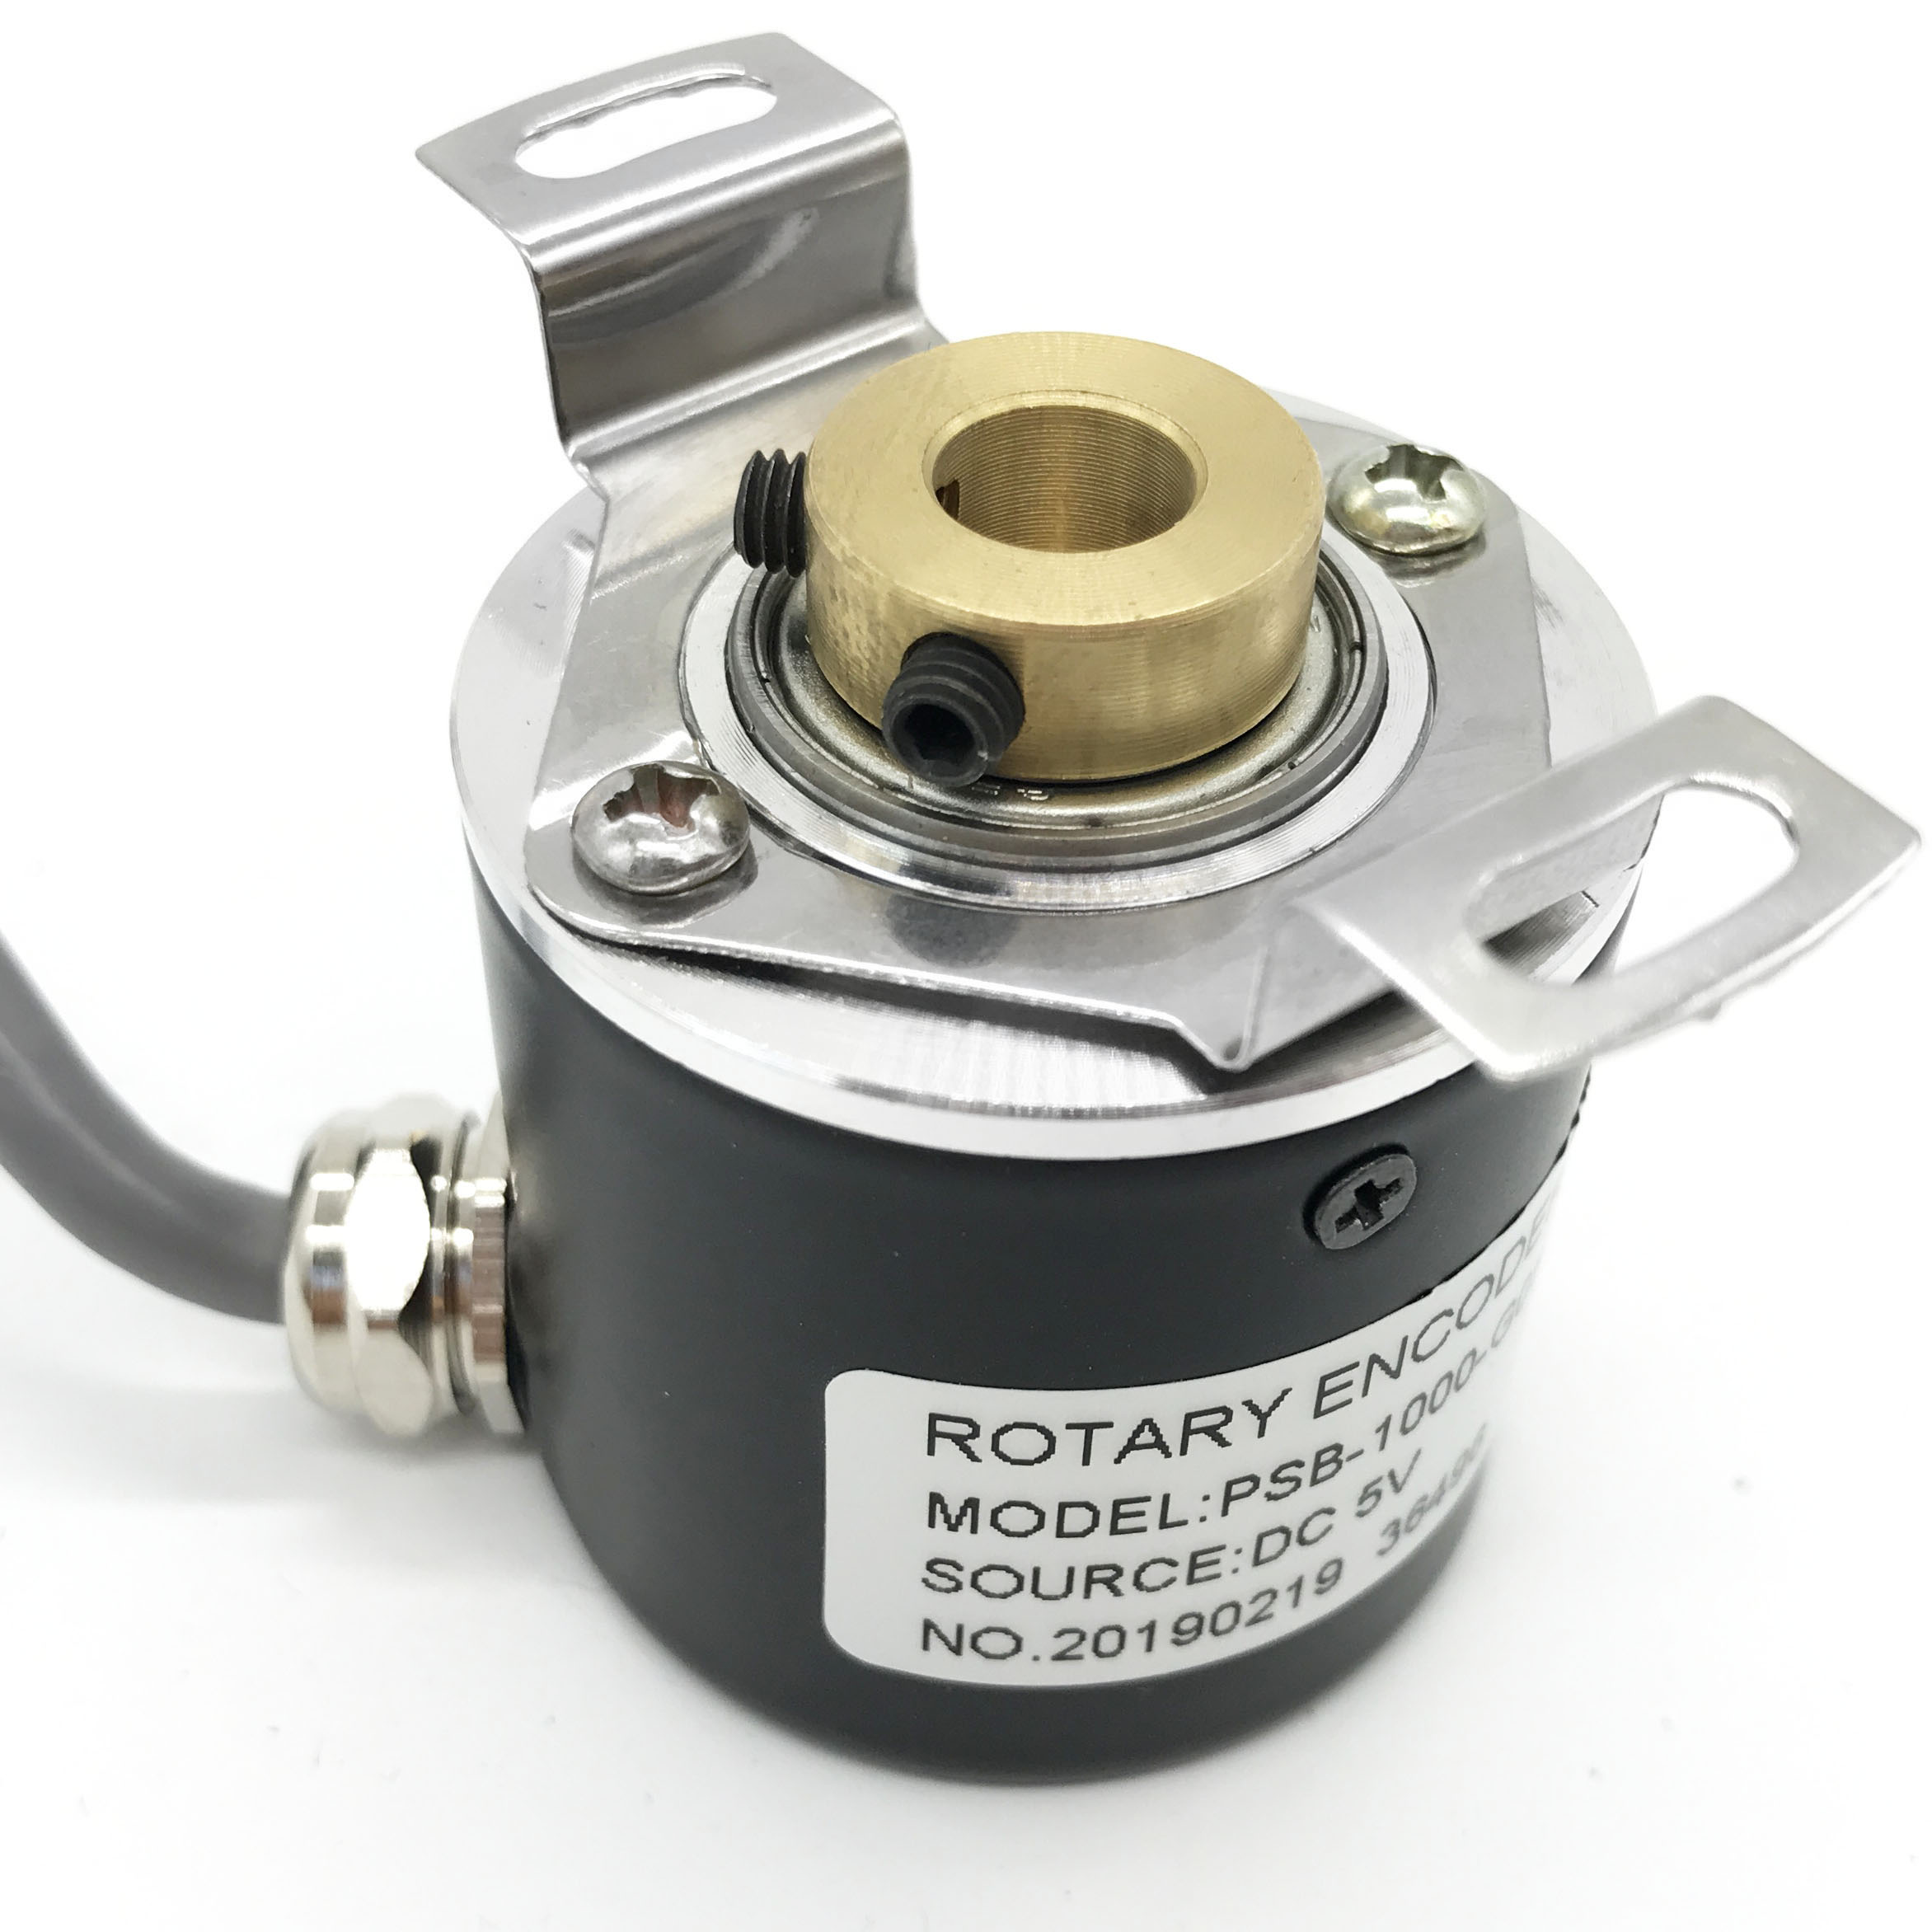 JXH-G8L1000 /PSB-<strong>1000</strong>-G05L optical incremental encoder / EMBROIDERY encoder replace Nemicon OVF <strong>1000</strong>